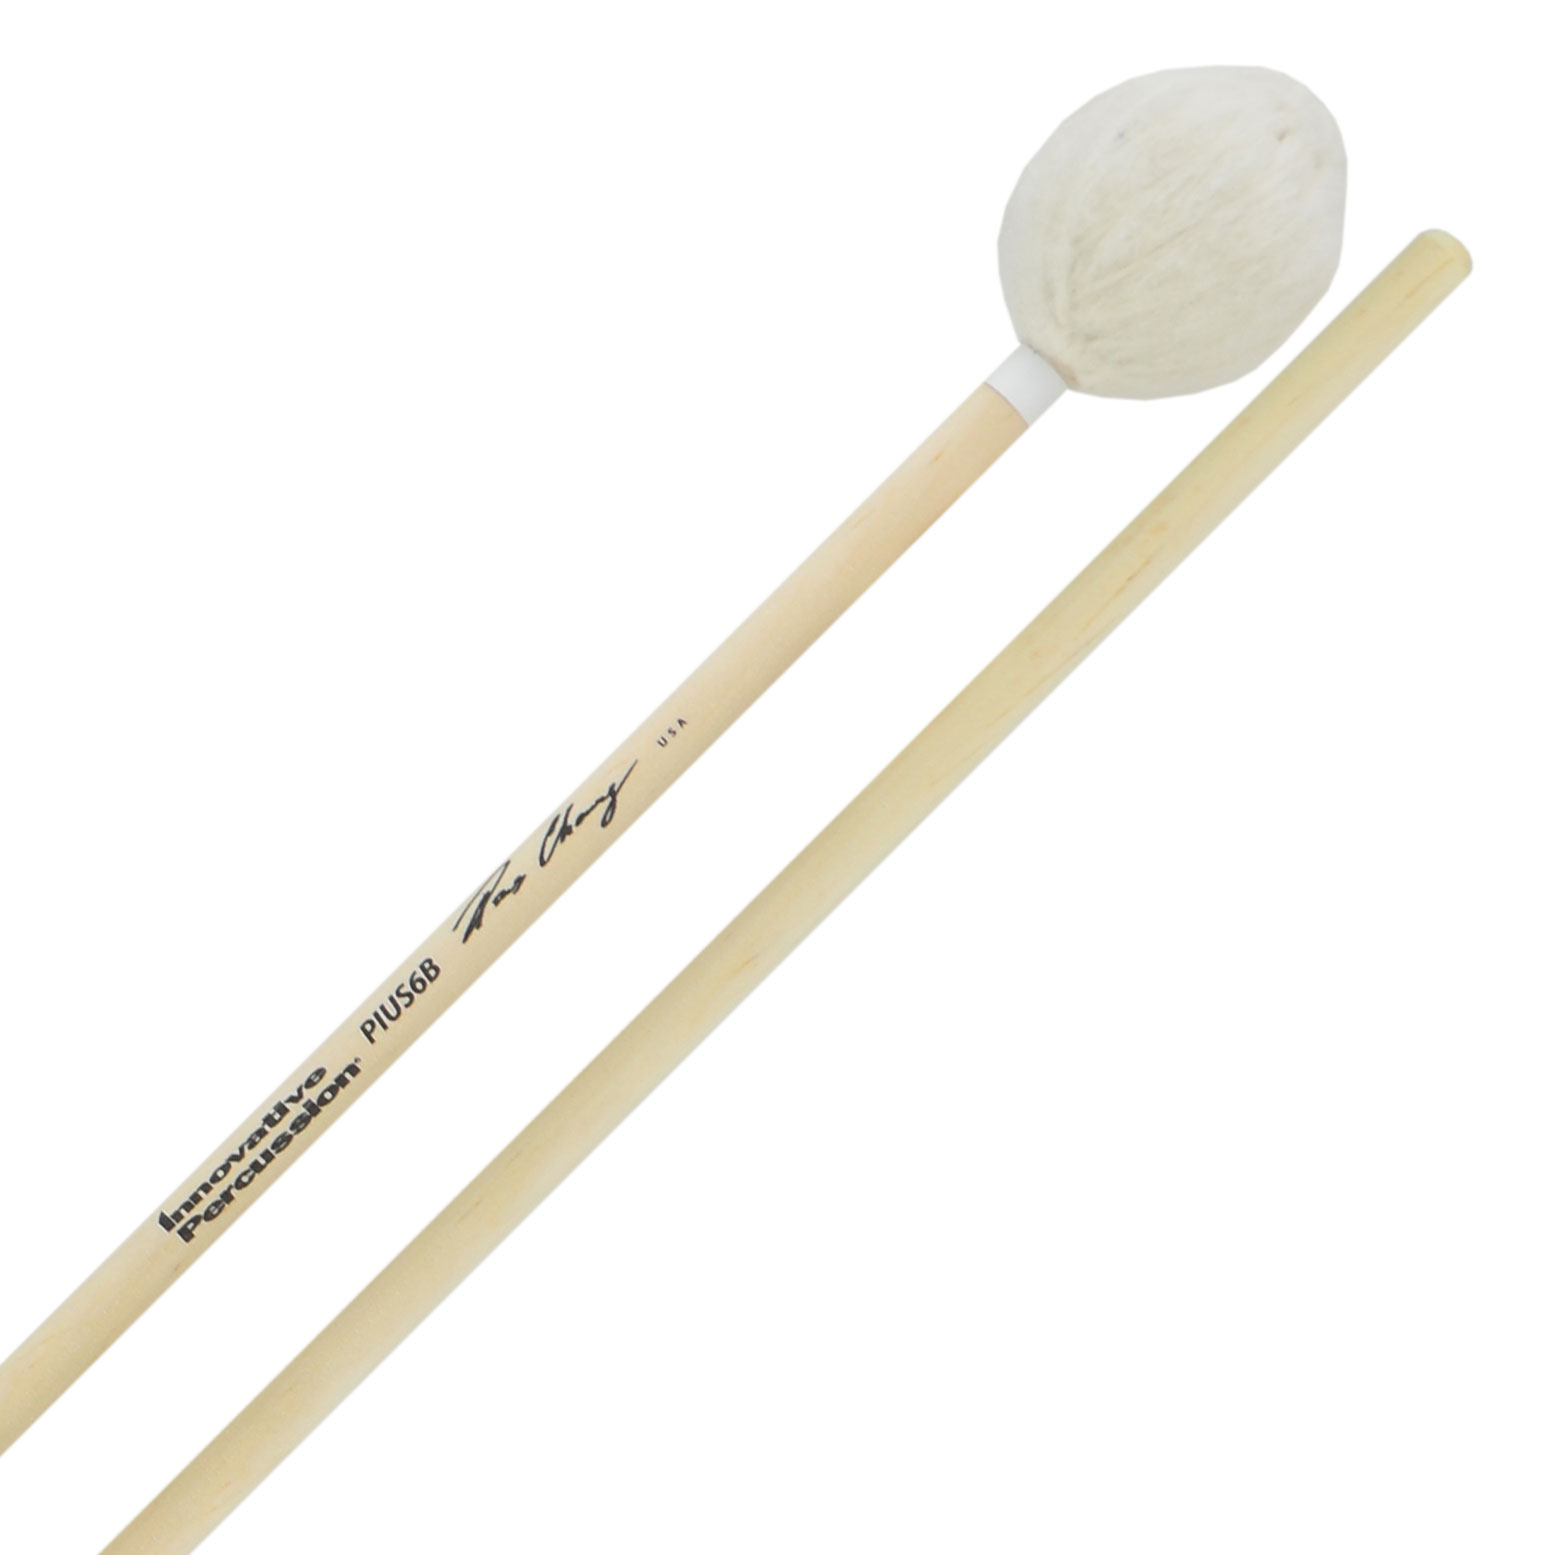 Innovative Percussion Pius Cheung Very Hard Marimba Mallets with Birch Handles